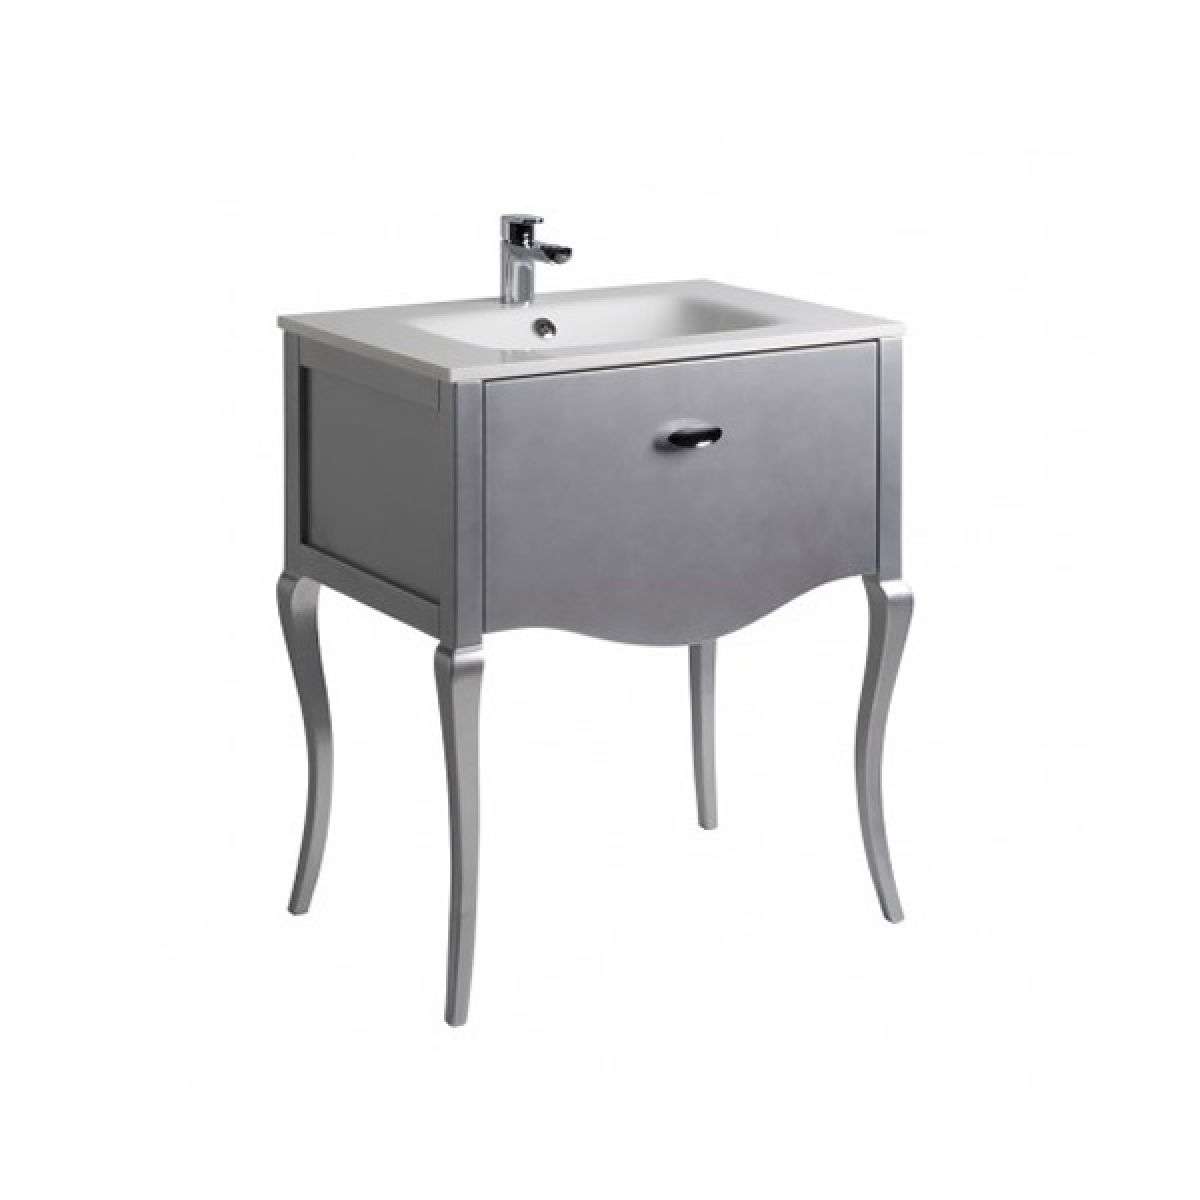 Roper rhodes provence 700mm silver basin and unit for Bathroom furniture 700mm